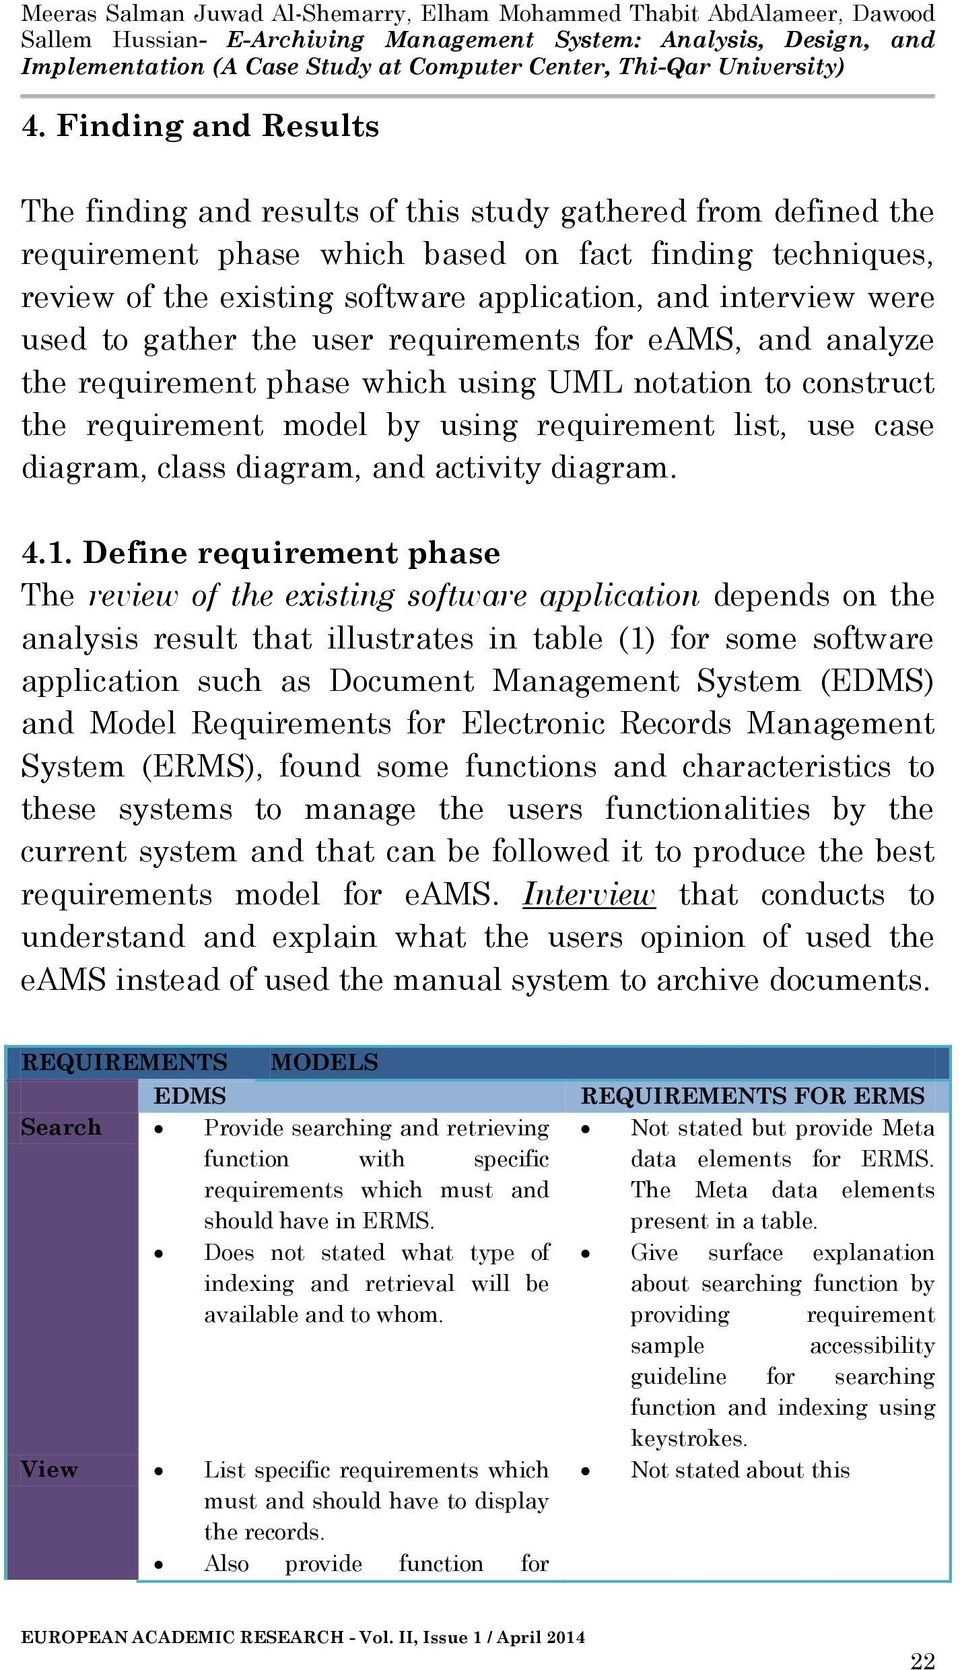 E Archiving Management System Analysis Design And Implementation A Case Study At Computer Center Thi Qar University Pdf Free Download